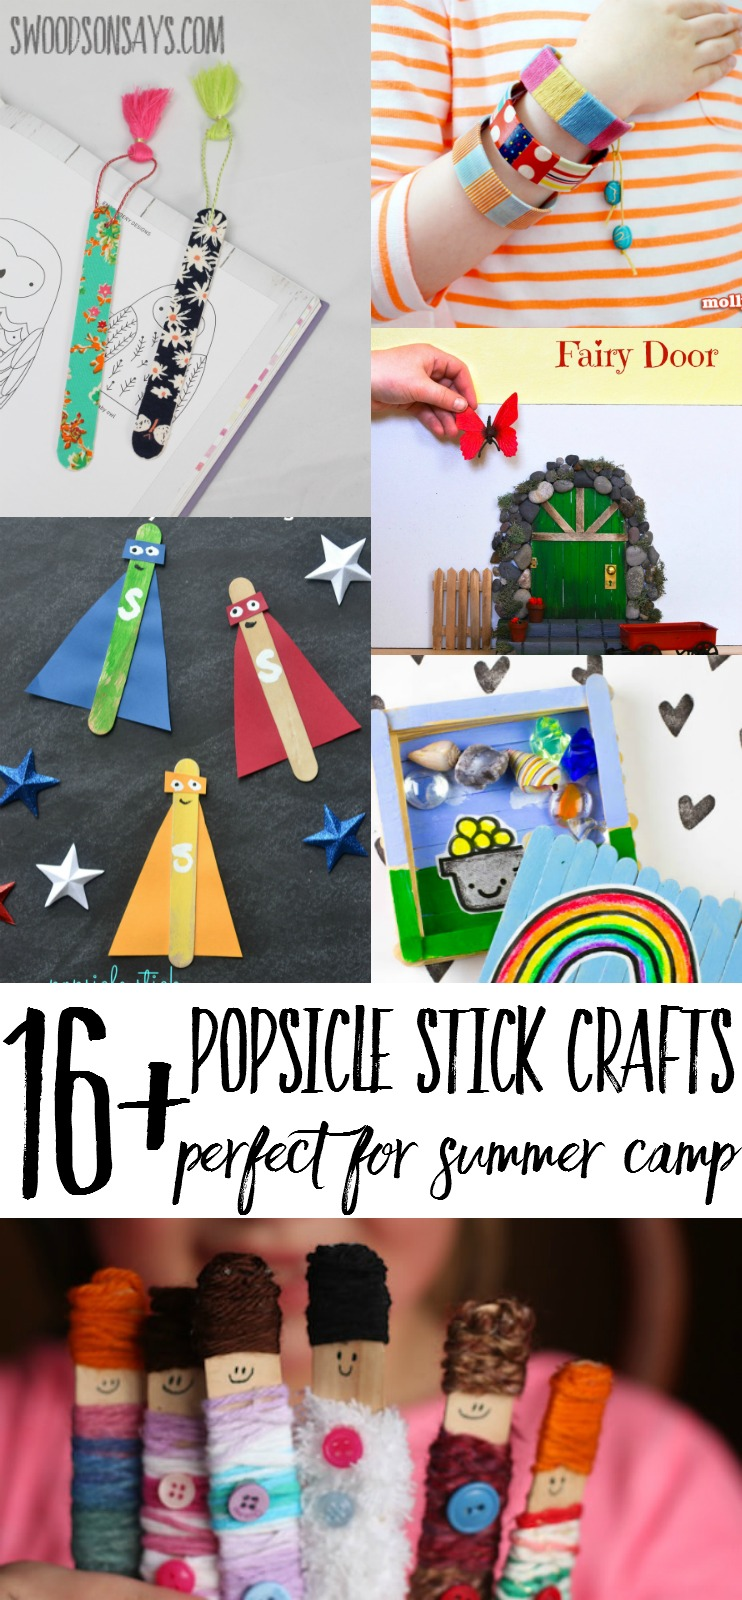 Popsicle Stick Craft Ideas For Summer Camp Swoodson Says